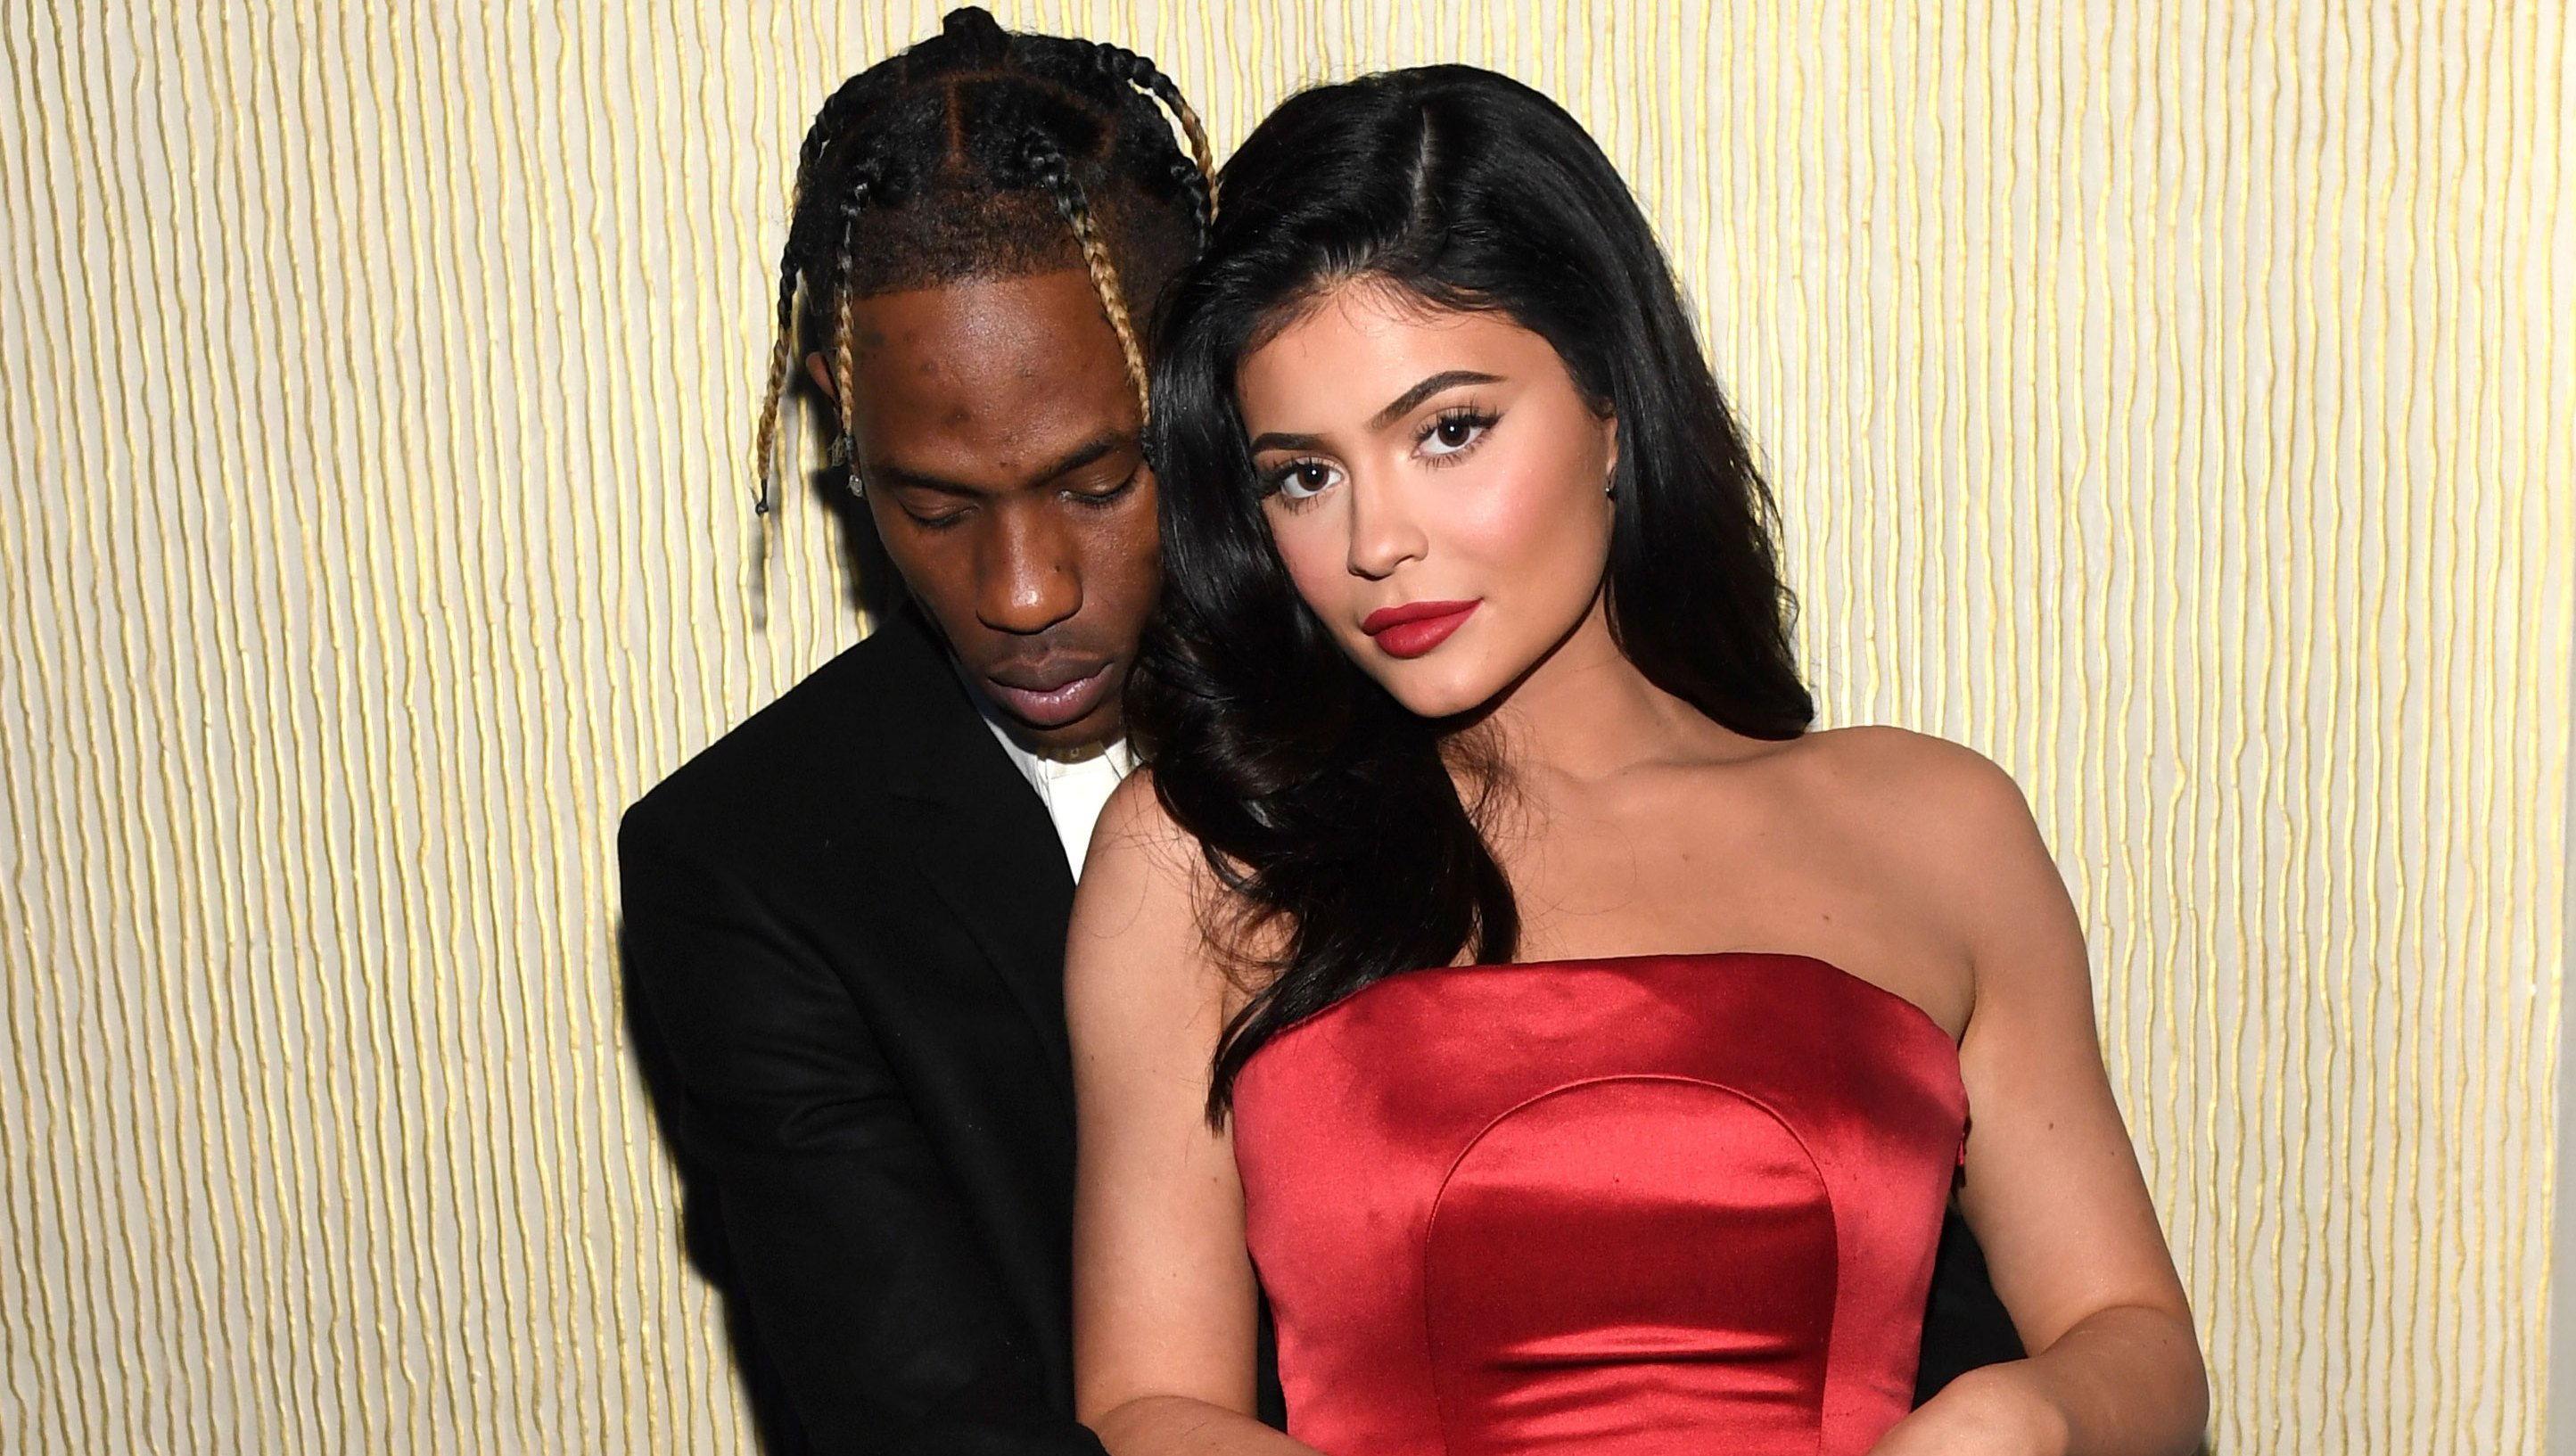 Travis Scott Shouts Out to 'Wifey' Kylie Jenner Amid Cheating Allegations